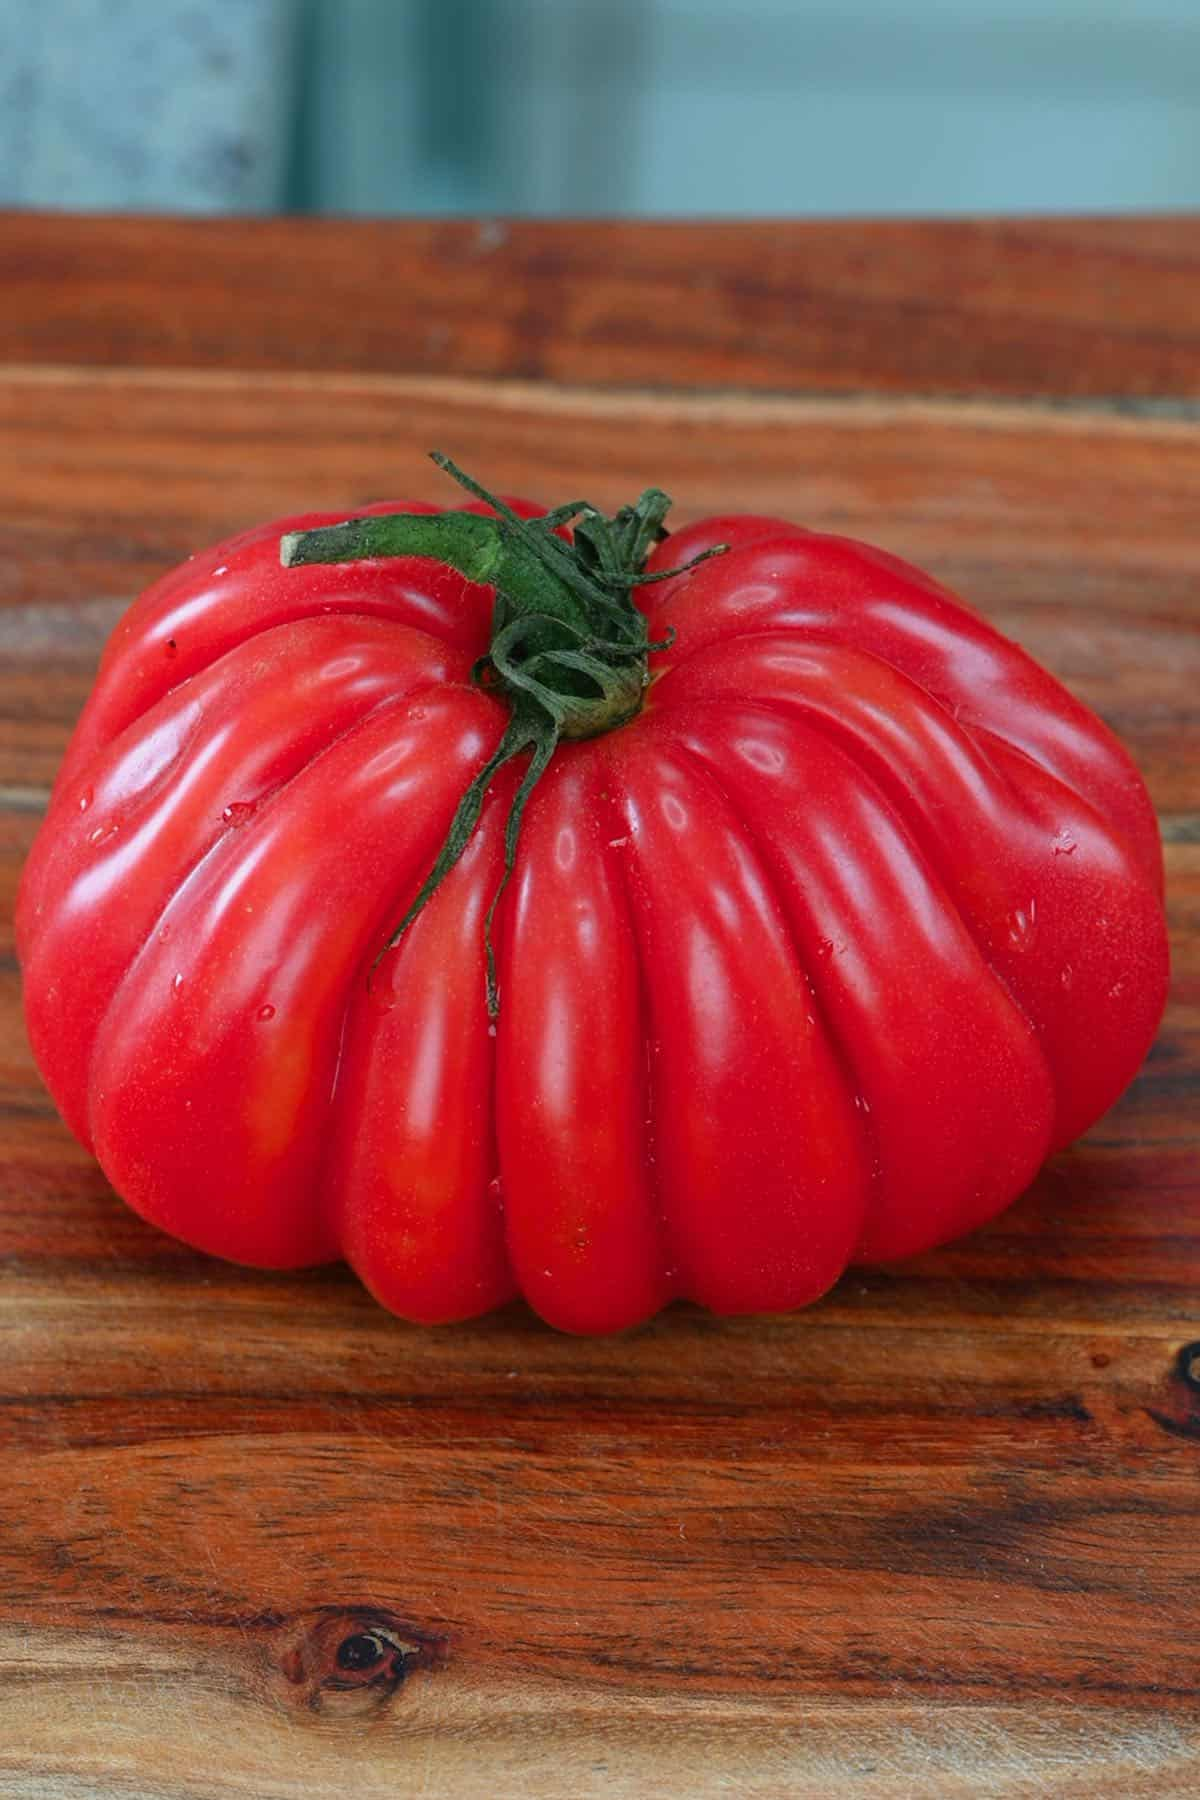 A tomato on a flat surface